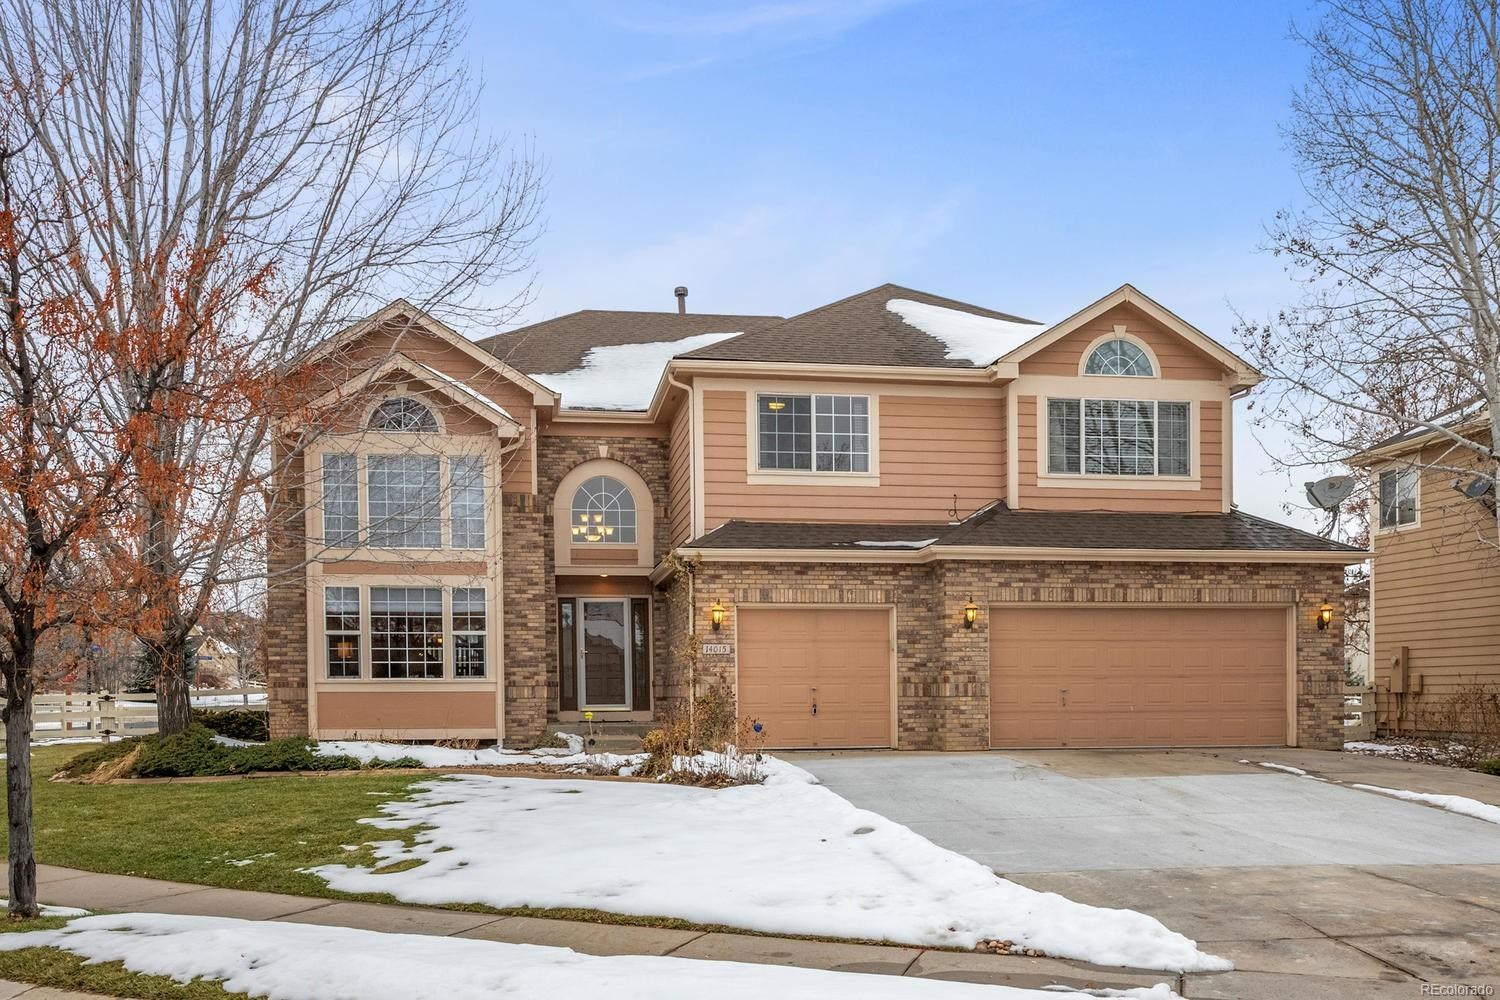 MLS# 7407386 - 1 - 14015 Turnberry Court, Broomfield, CO 80023